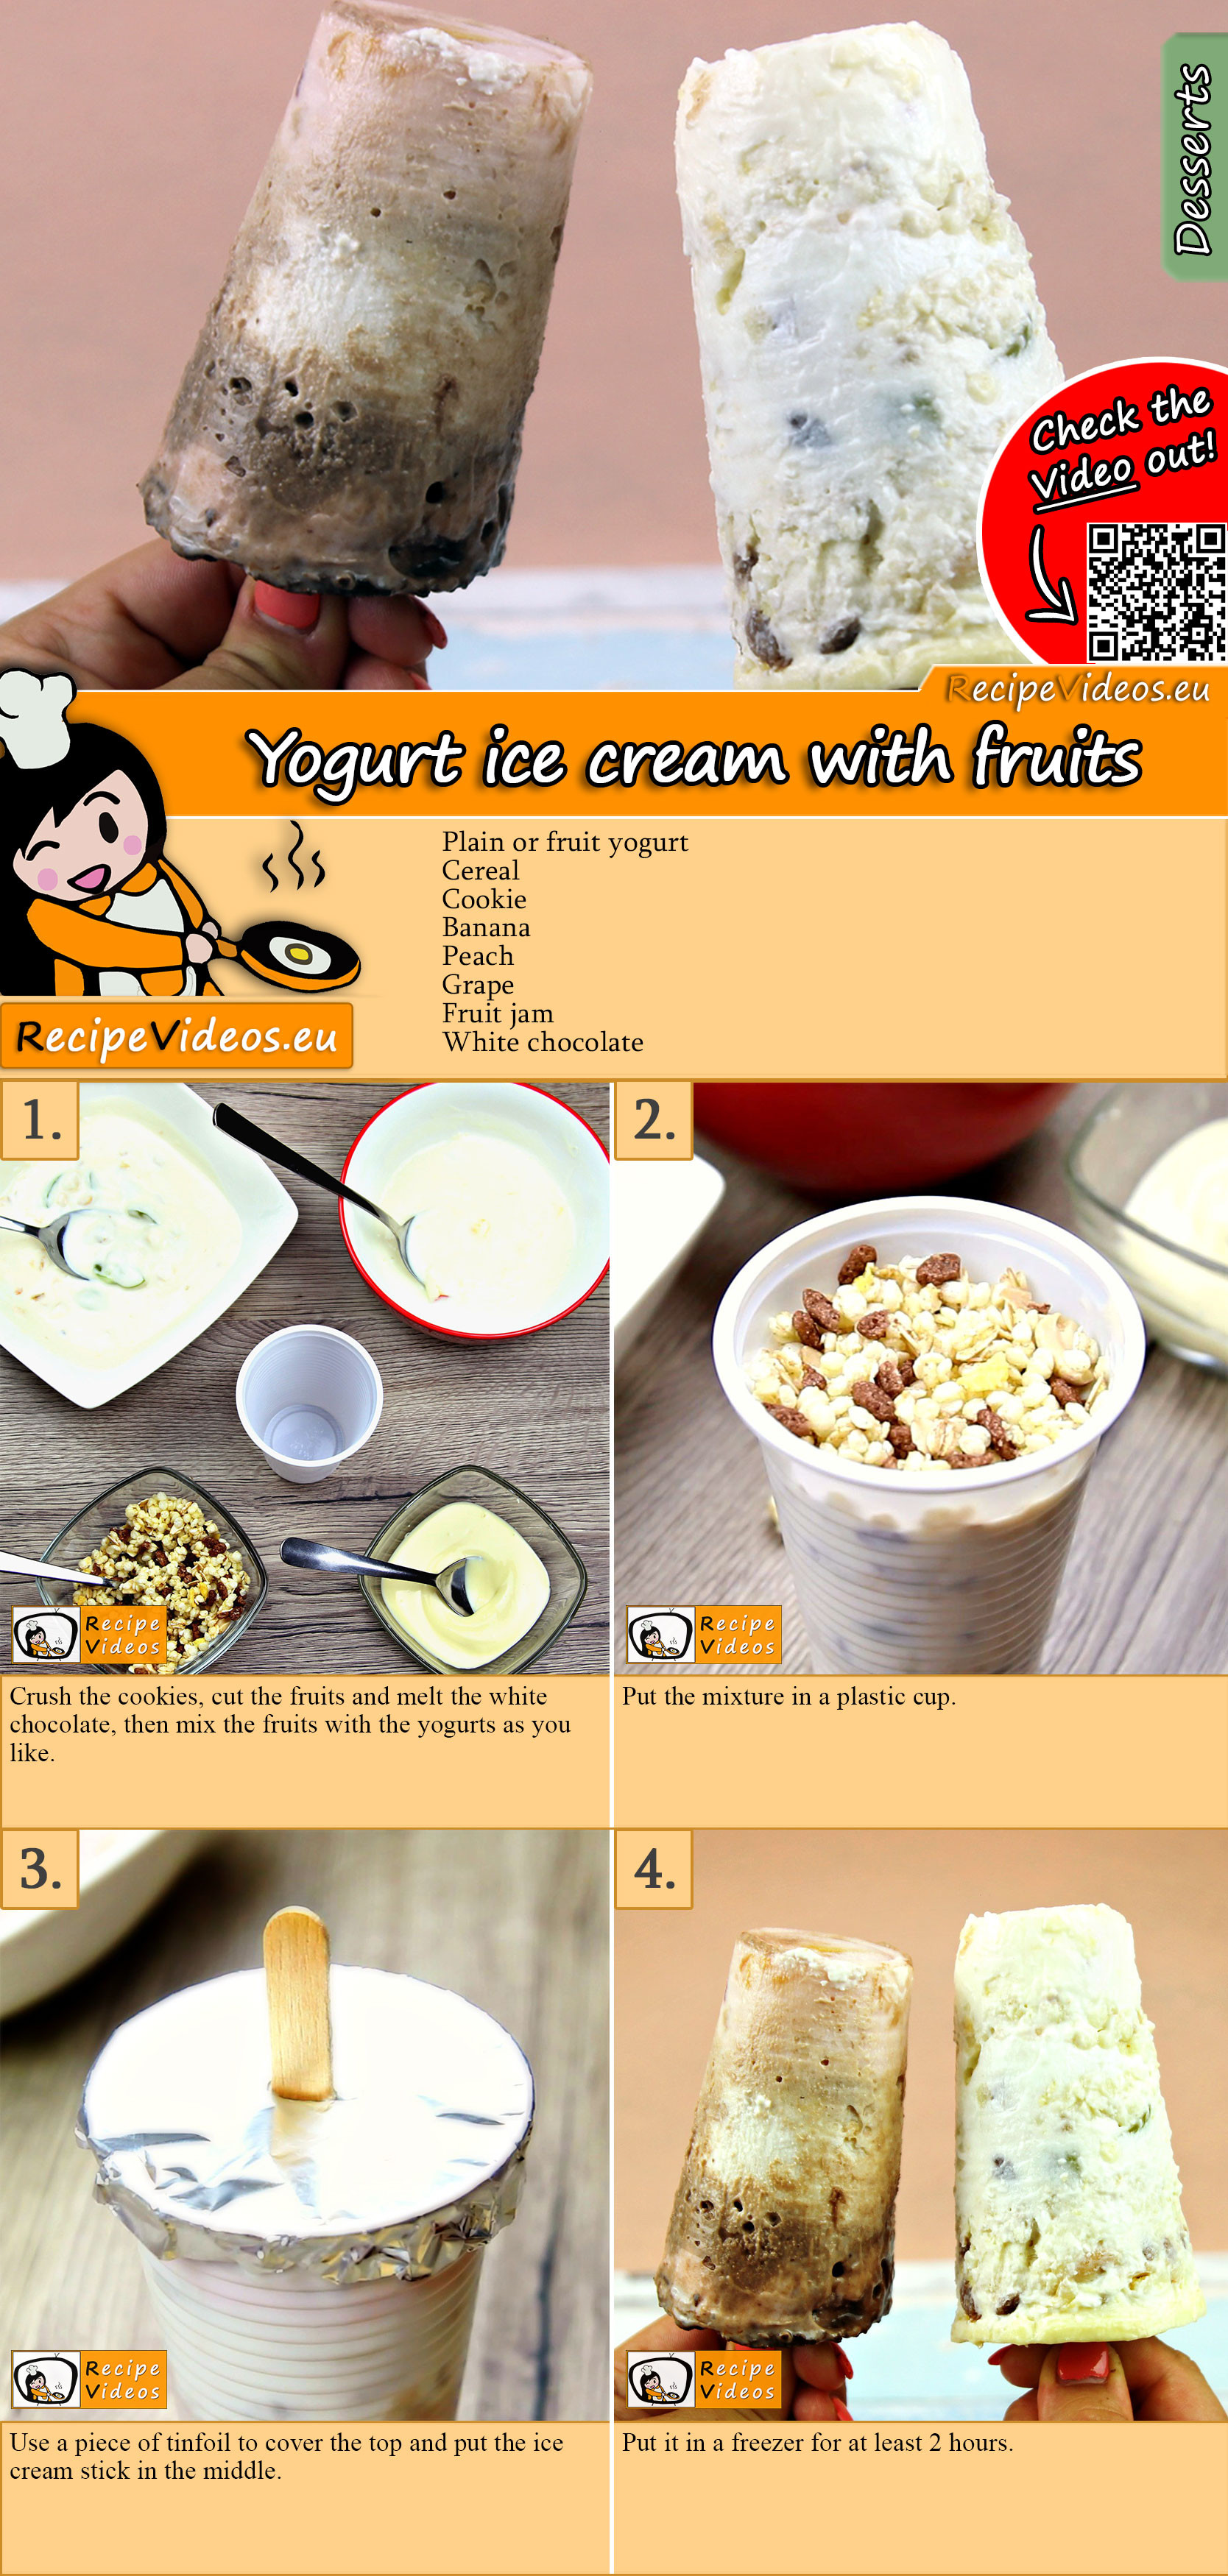 Yogurt ice cream with fruits recipe with video